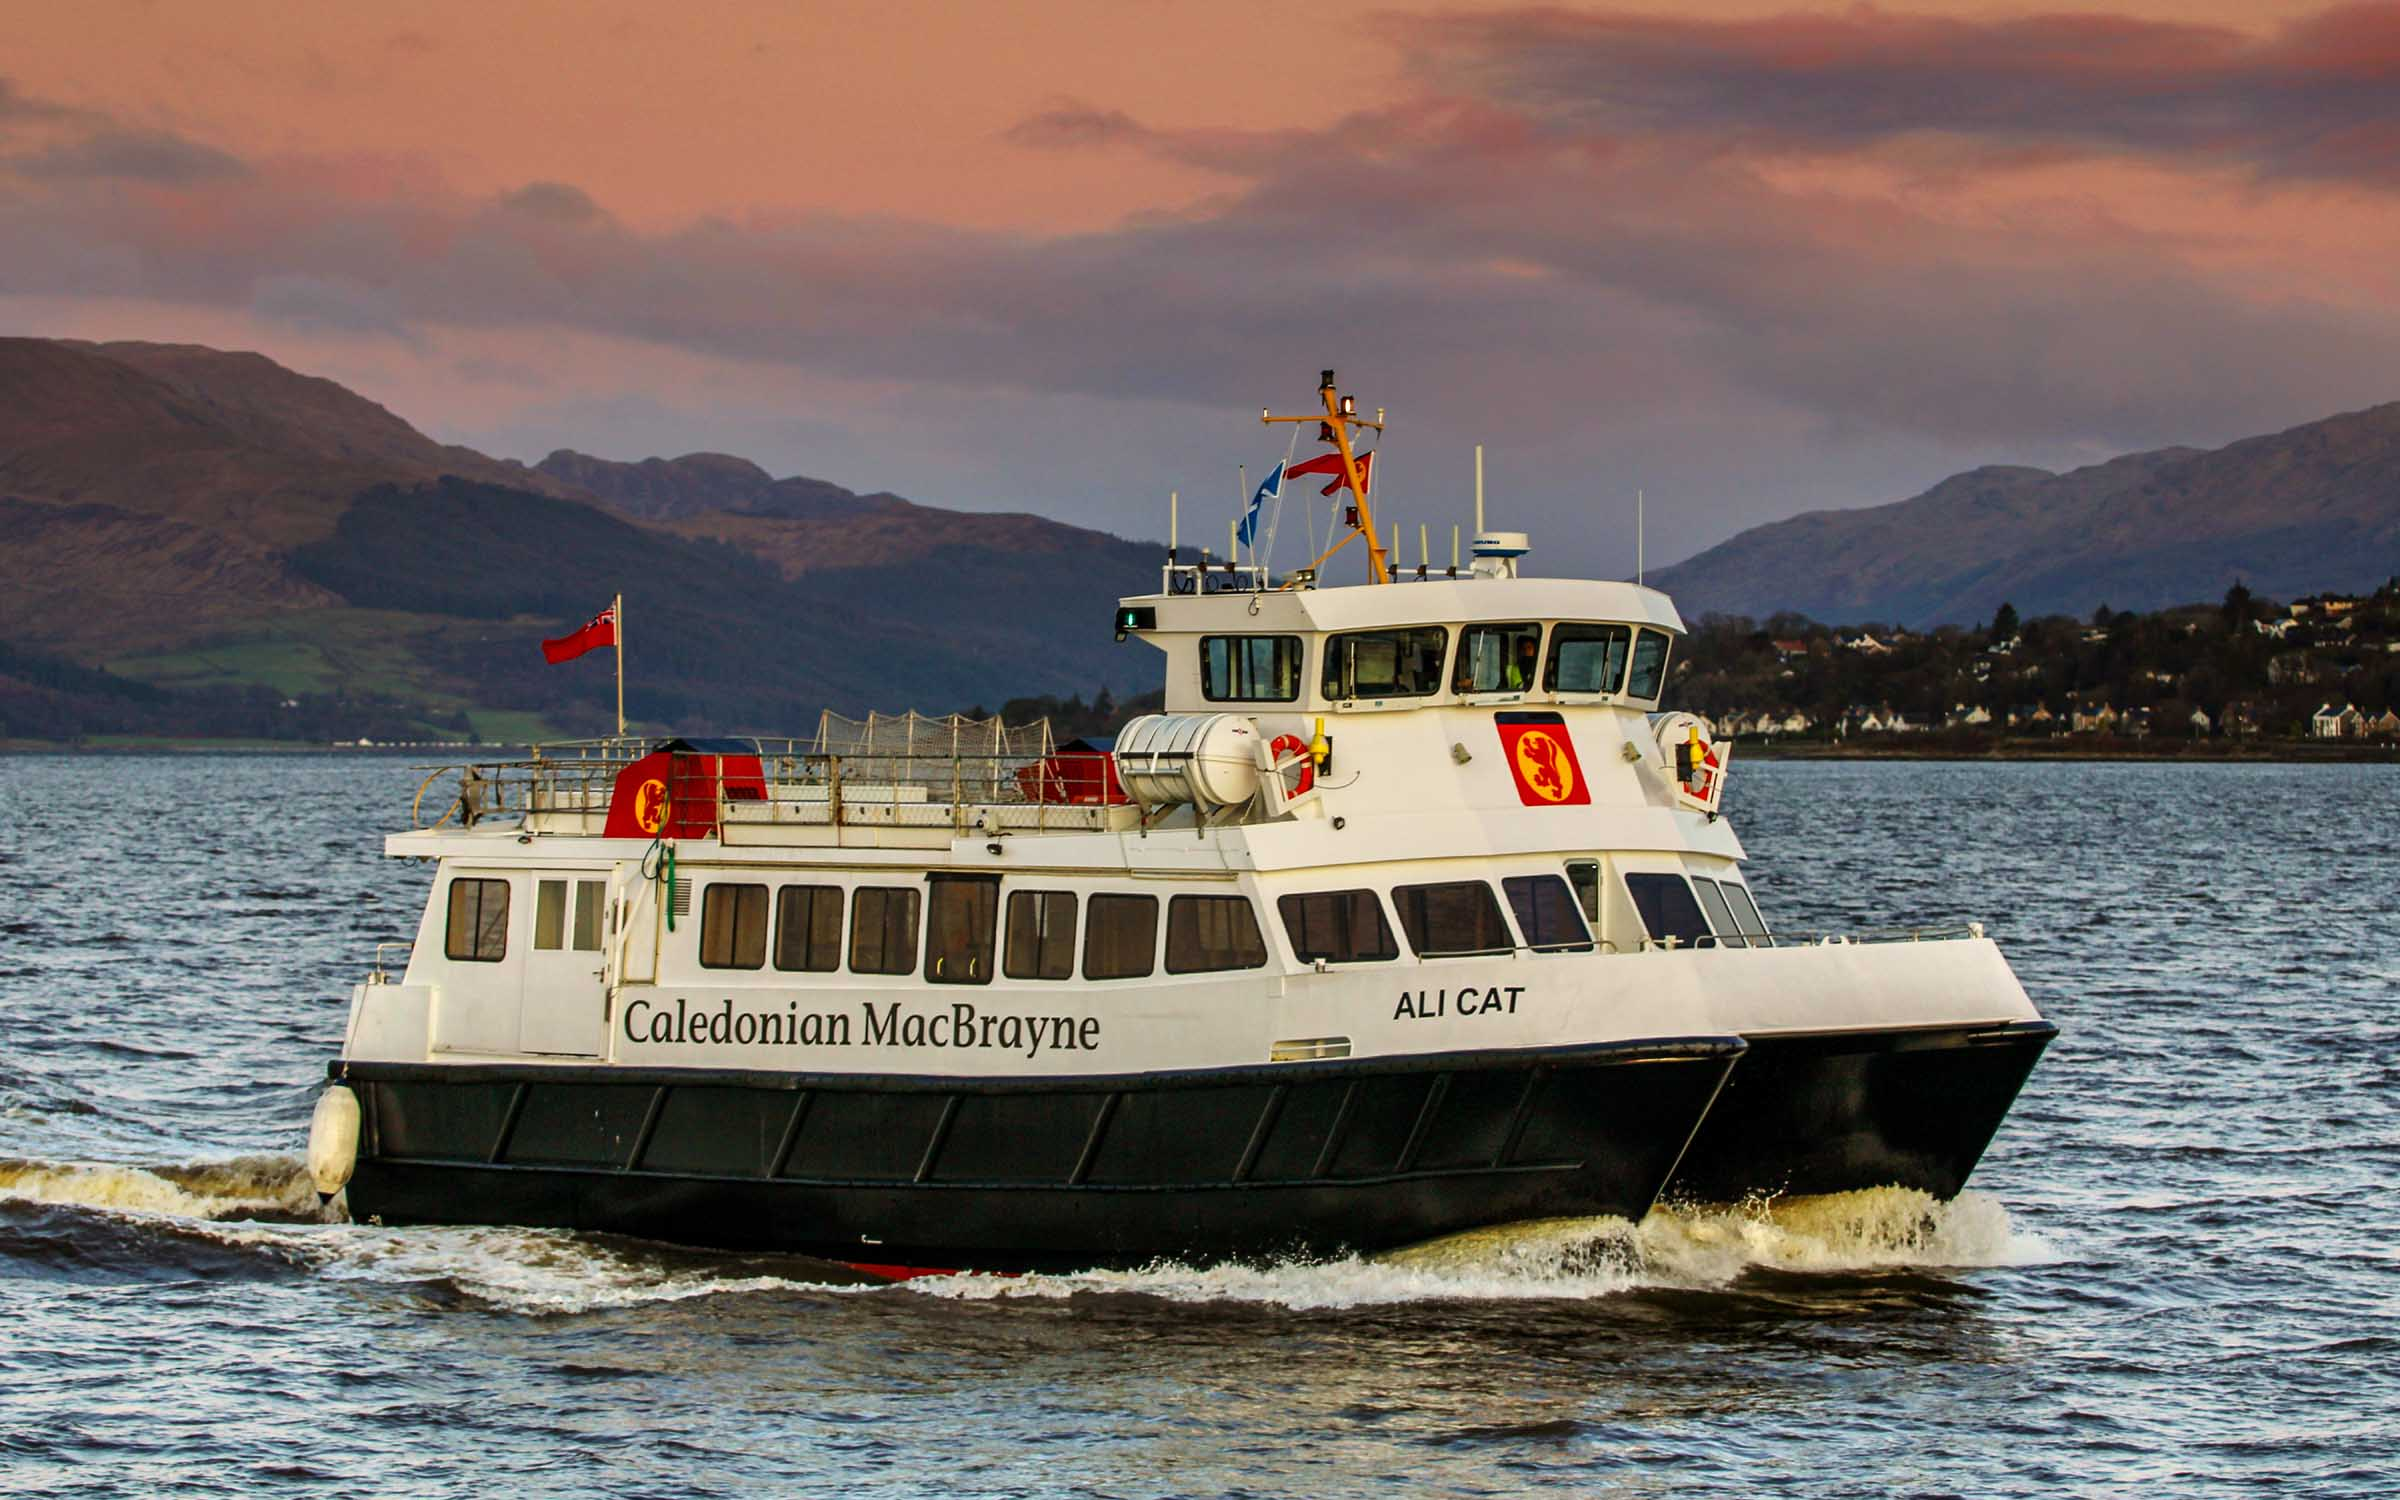 Ali Cat in Calmac colours on the route in 2020 (Ships of CalMac)